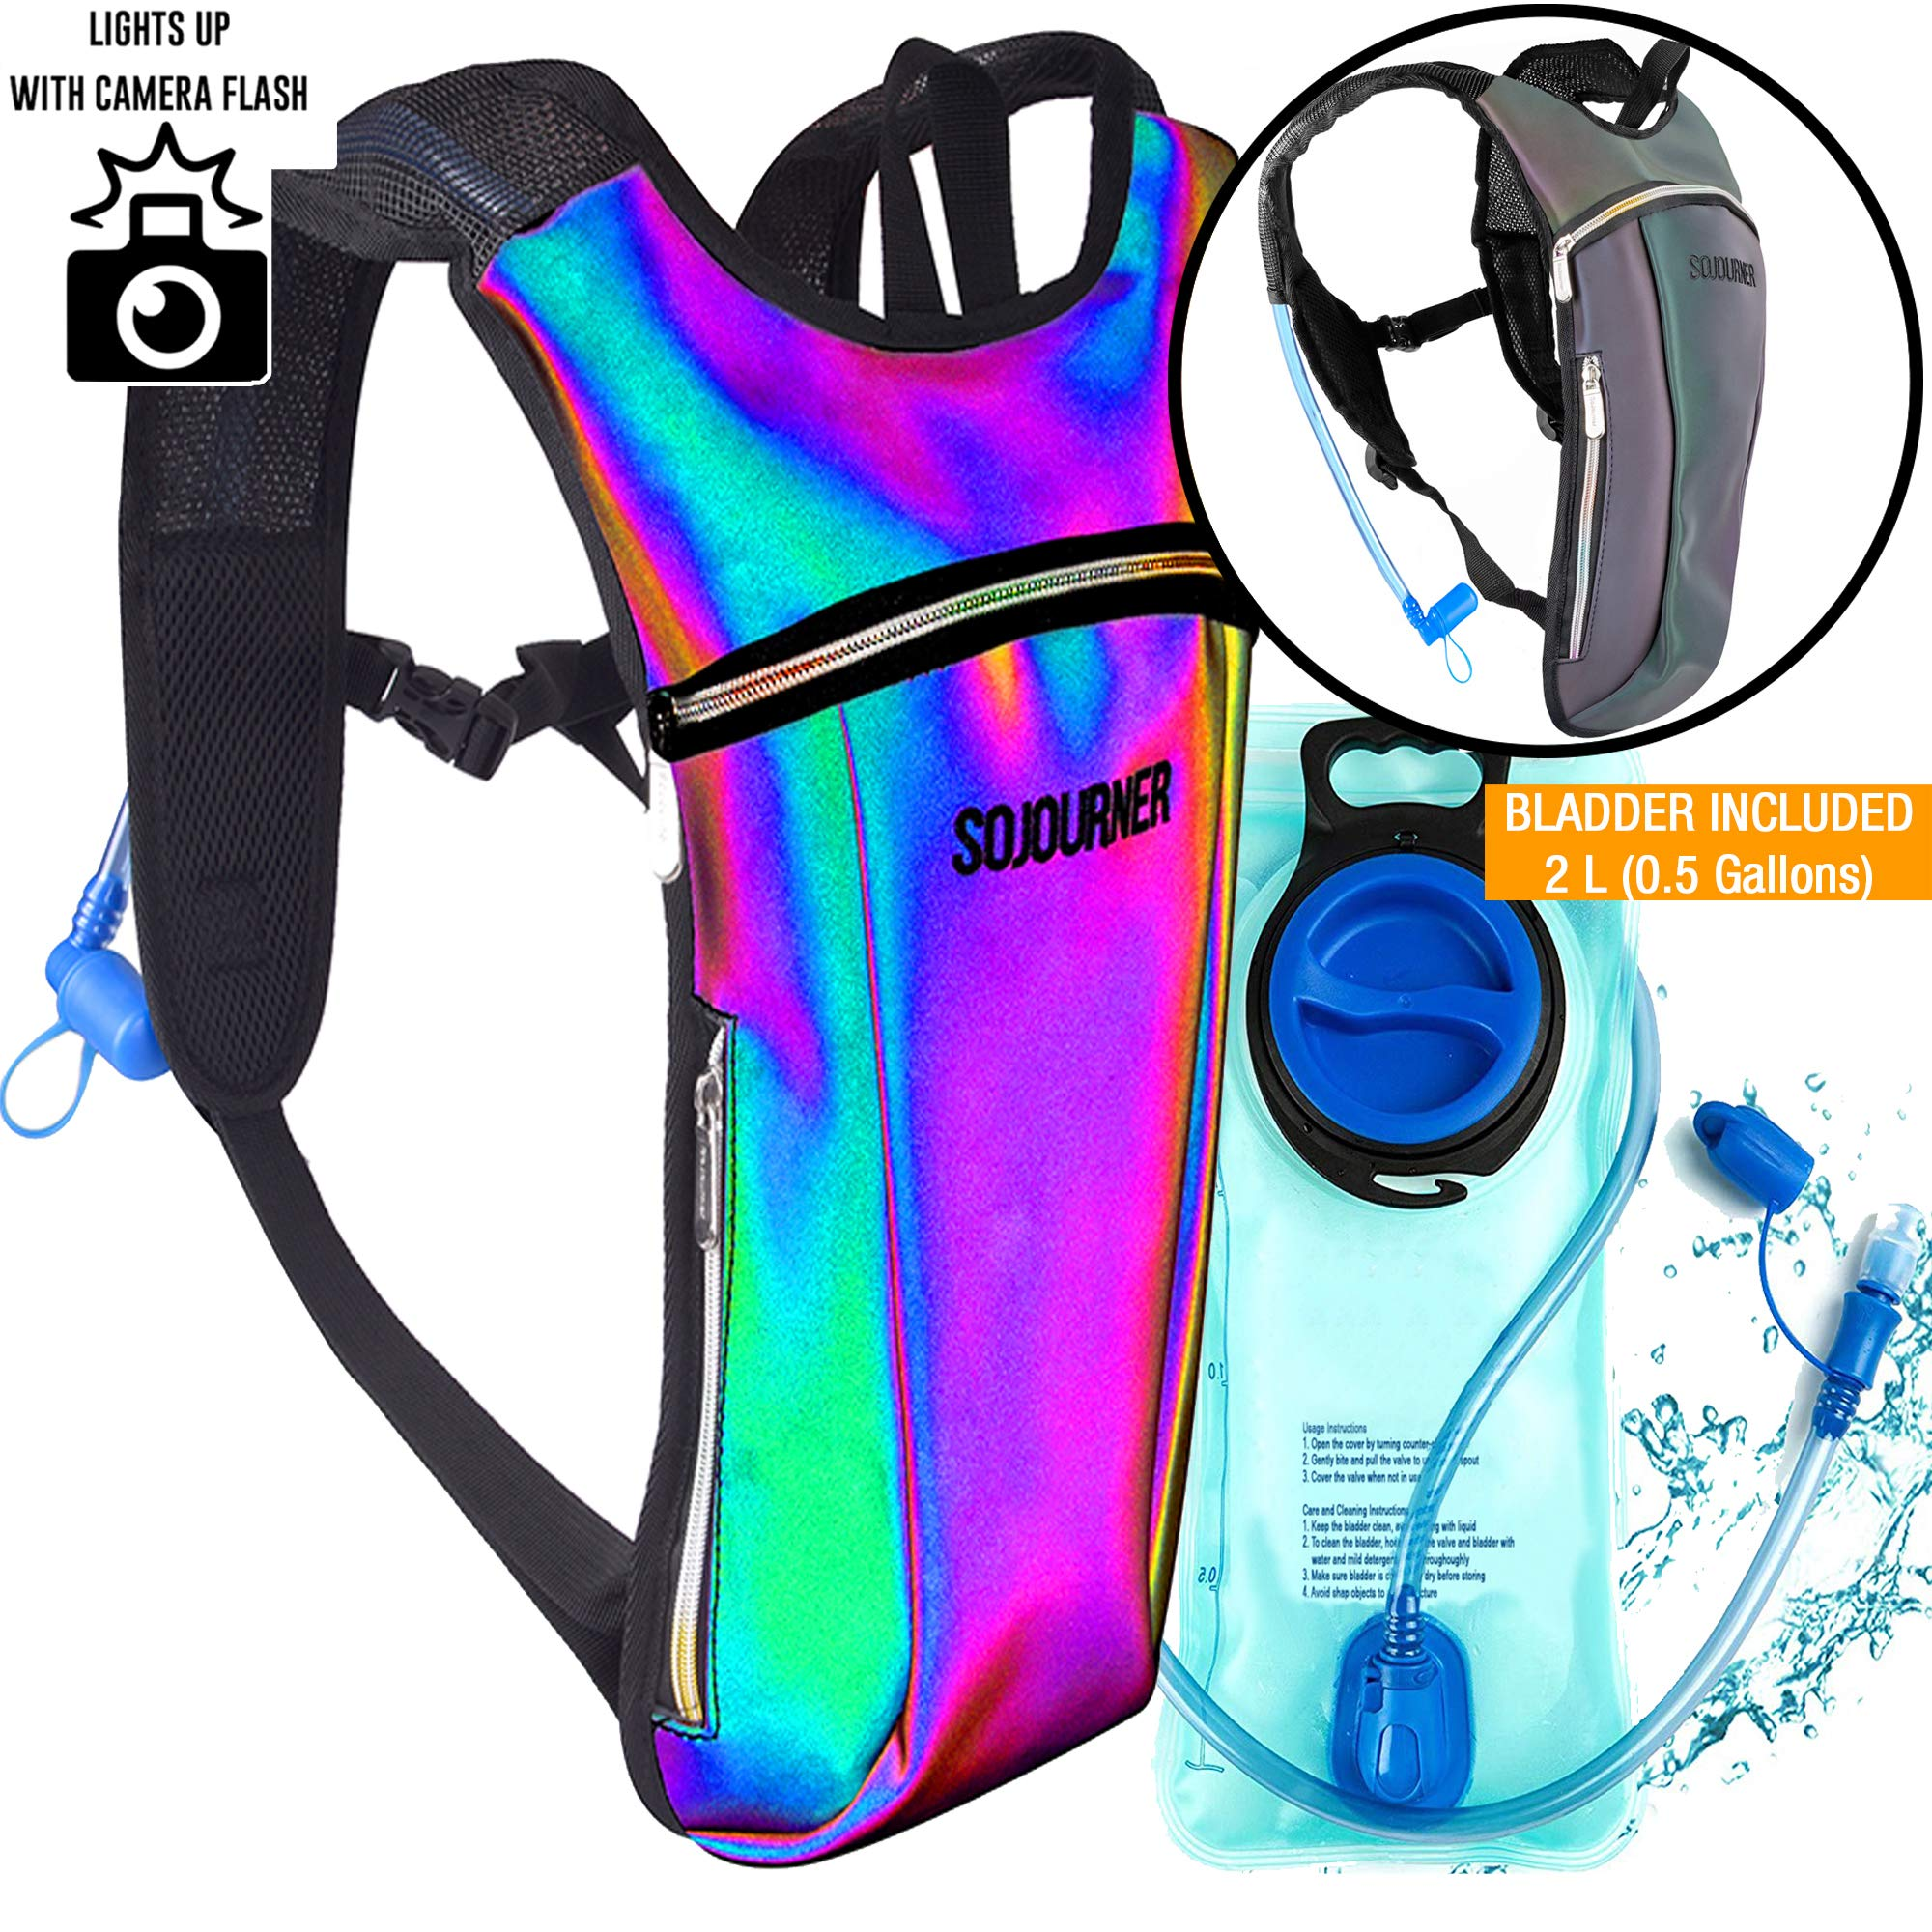 Sojourner Rave Hydration Pack Backpack - 2L Water Bladder Included for Festivals, Raves, Hiking, Biking, Climbing, Running and More (Small) (Luminous - Green) by SoJourner Bags